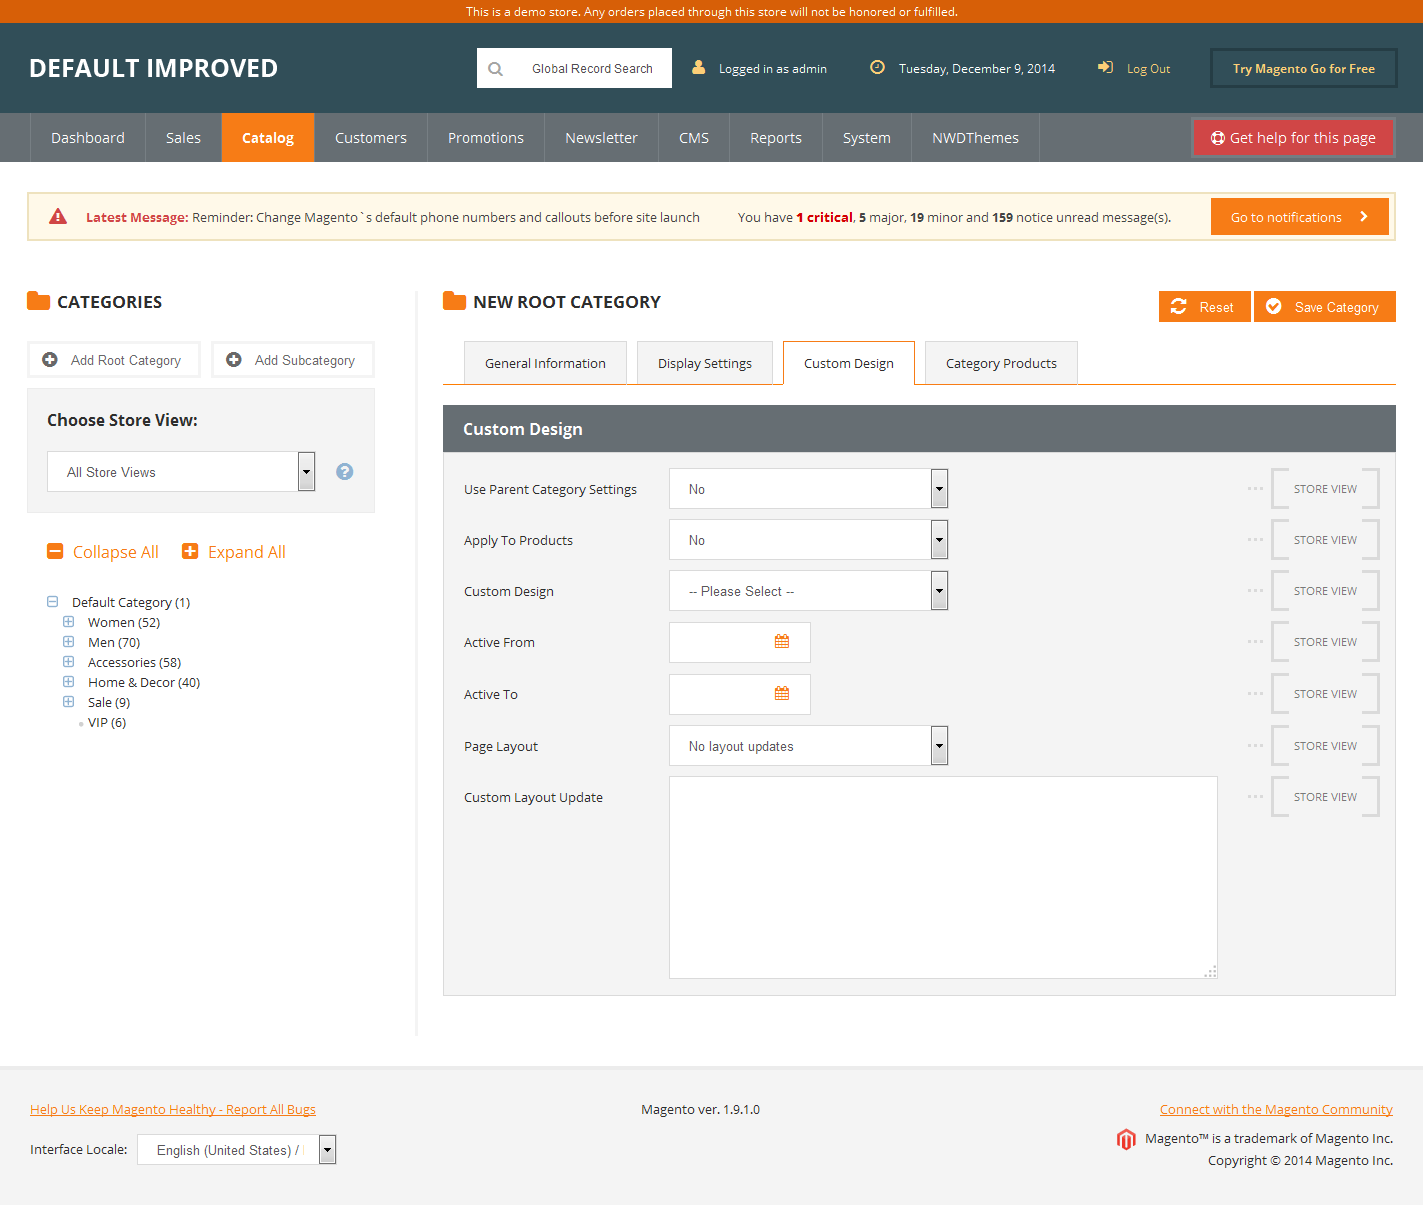 Magento Admin Theme - Default Improved